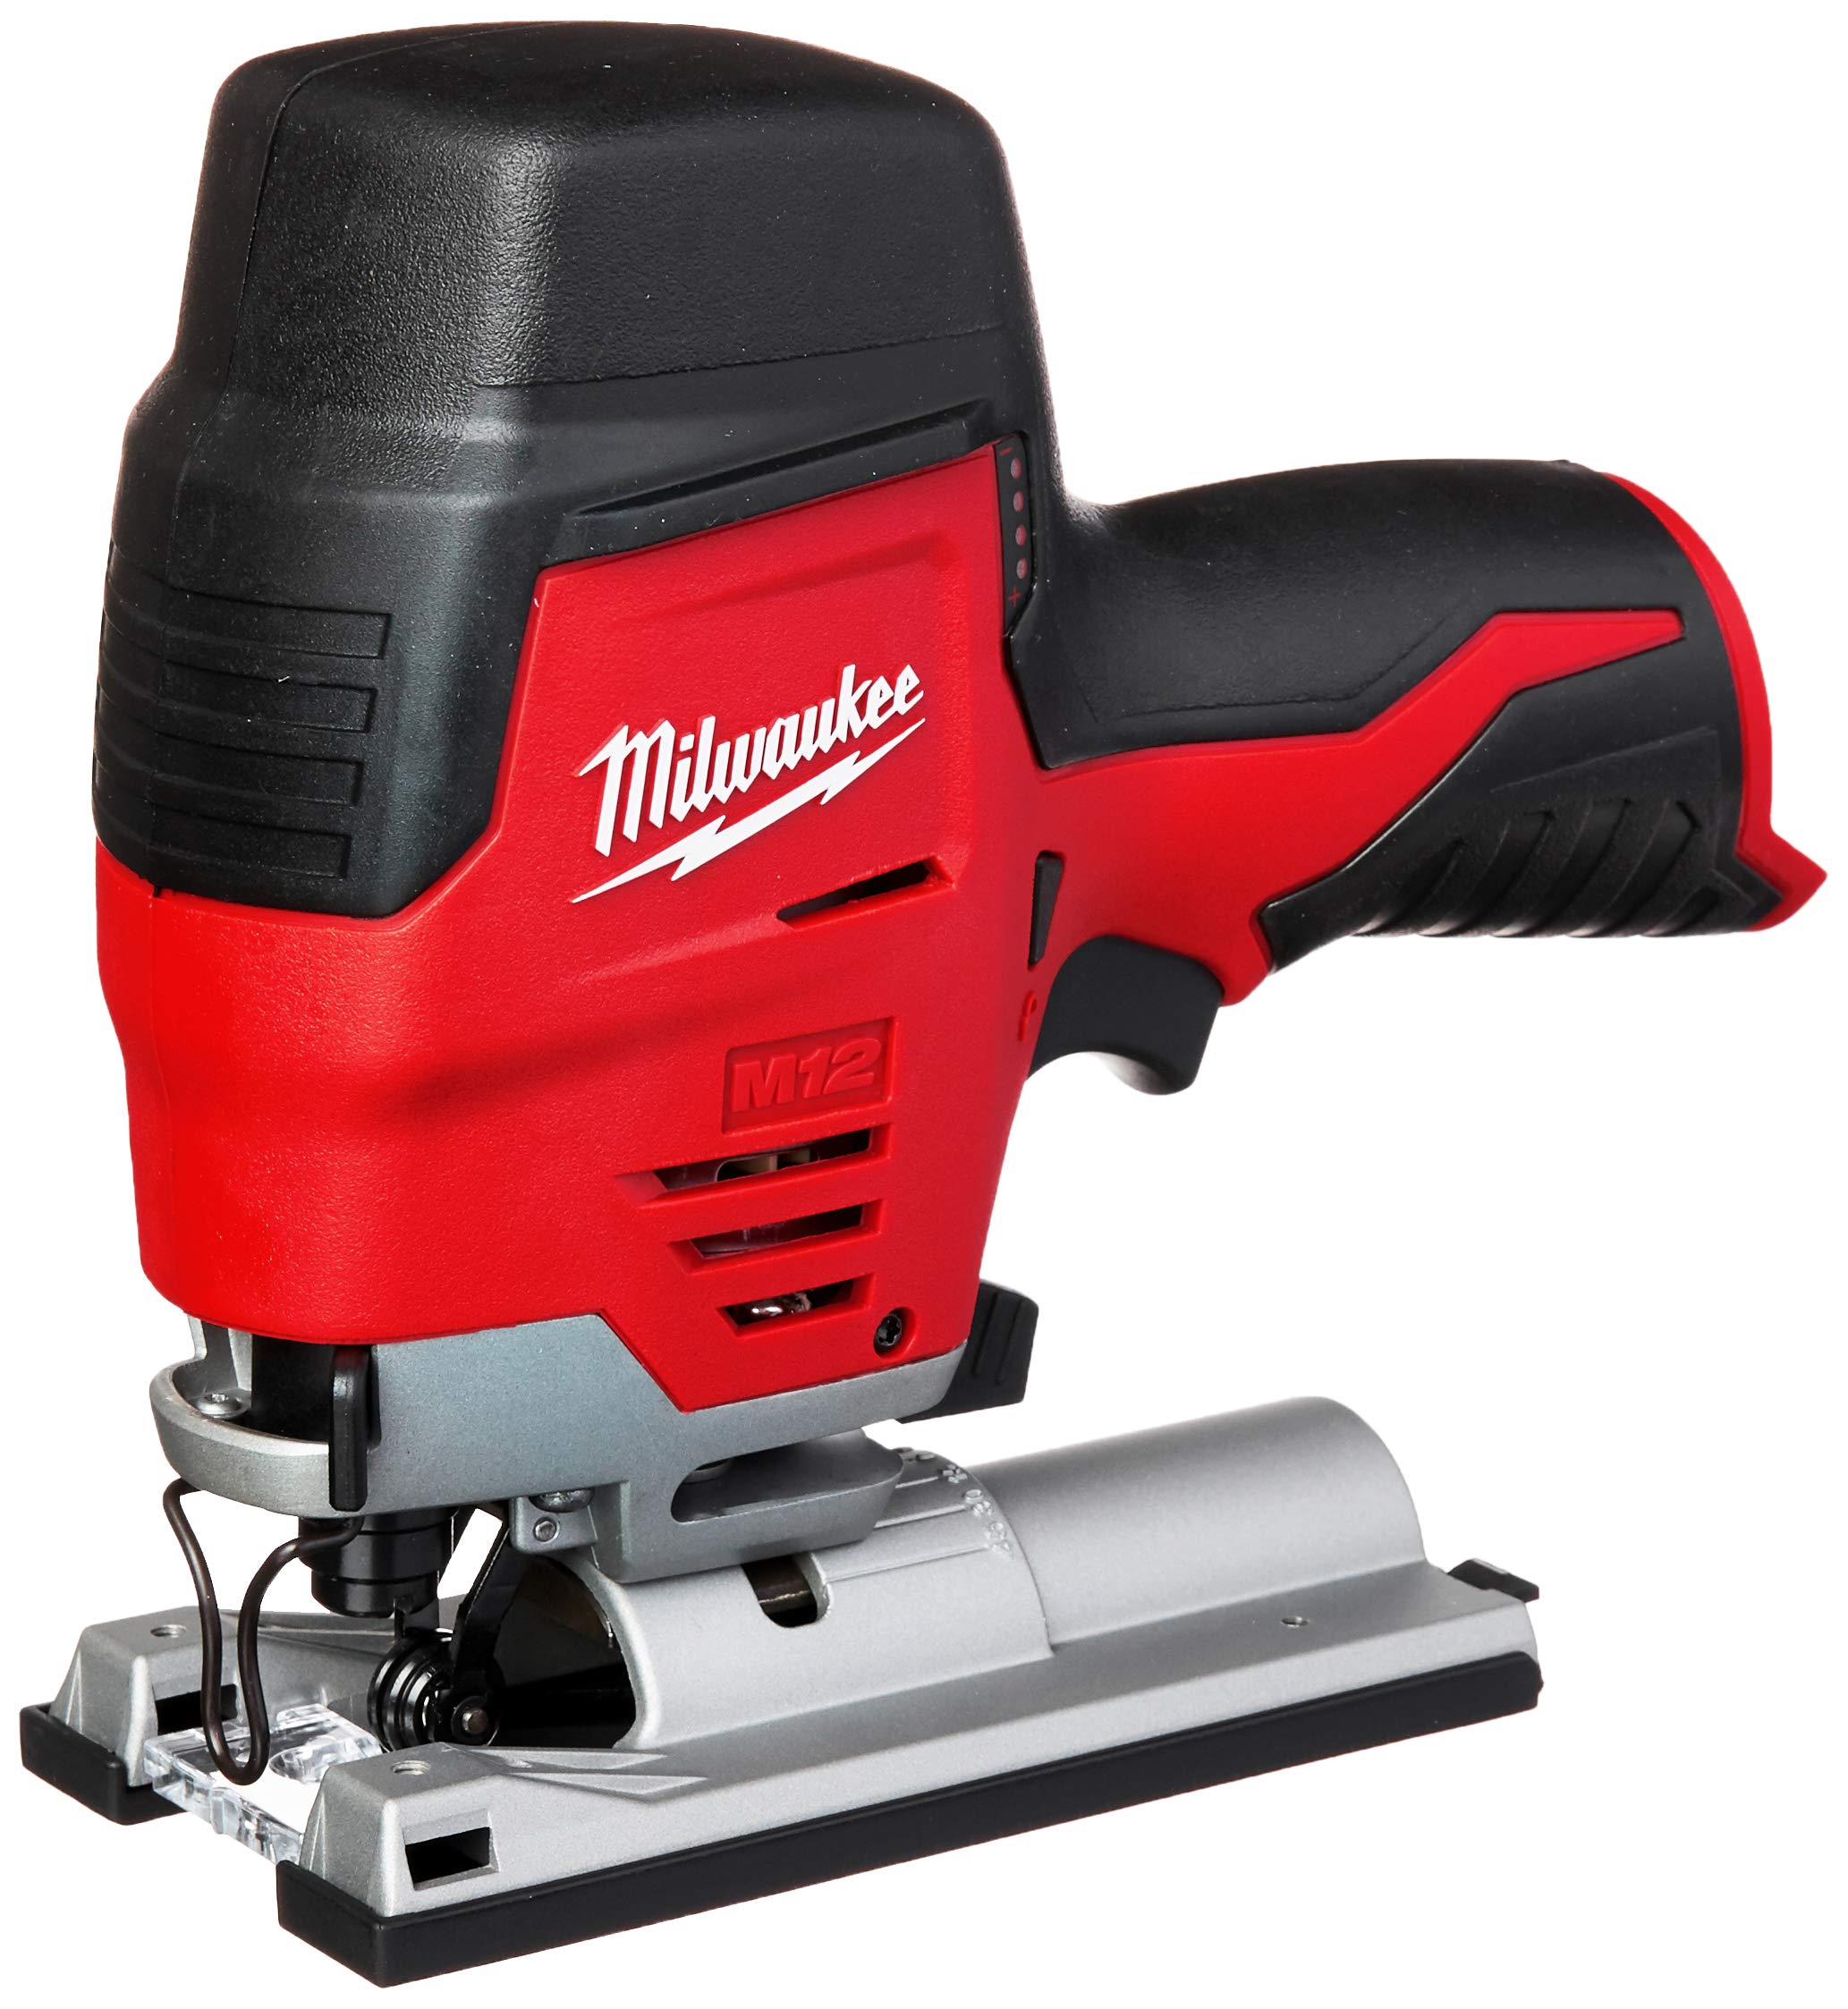 Milwaukee 2445-20 M12 Jig Saw tool Only by Milwaukee